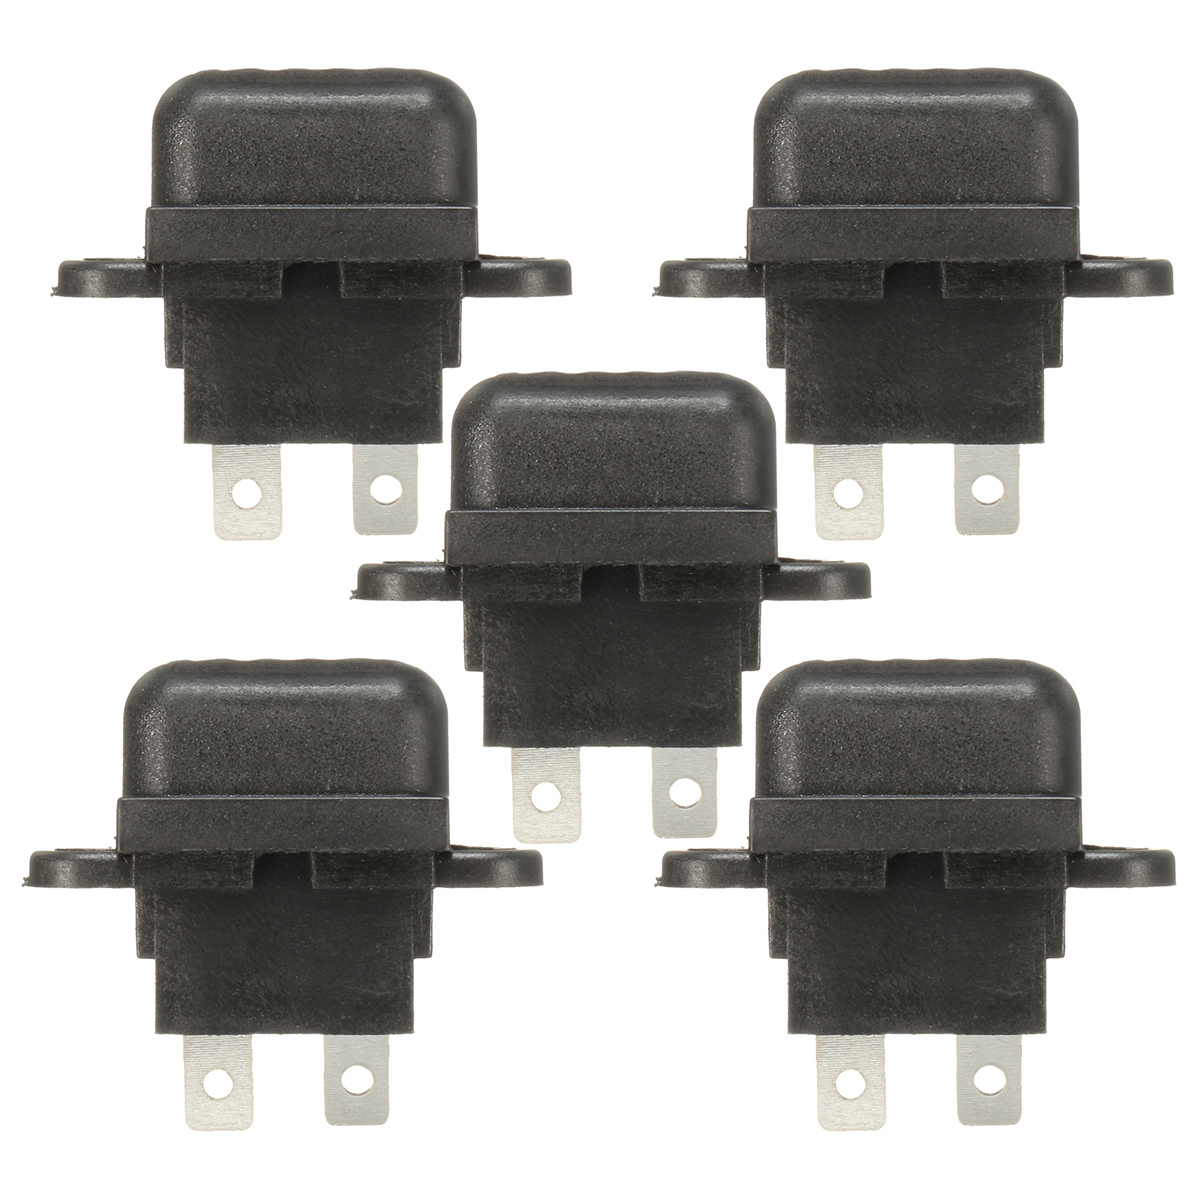 5Pcs 30A Amp Auto Blade Standard Fuse Holder Box For Car ... Xbox Steering Wheel Fuse on